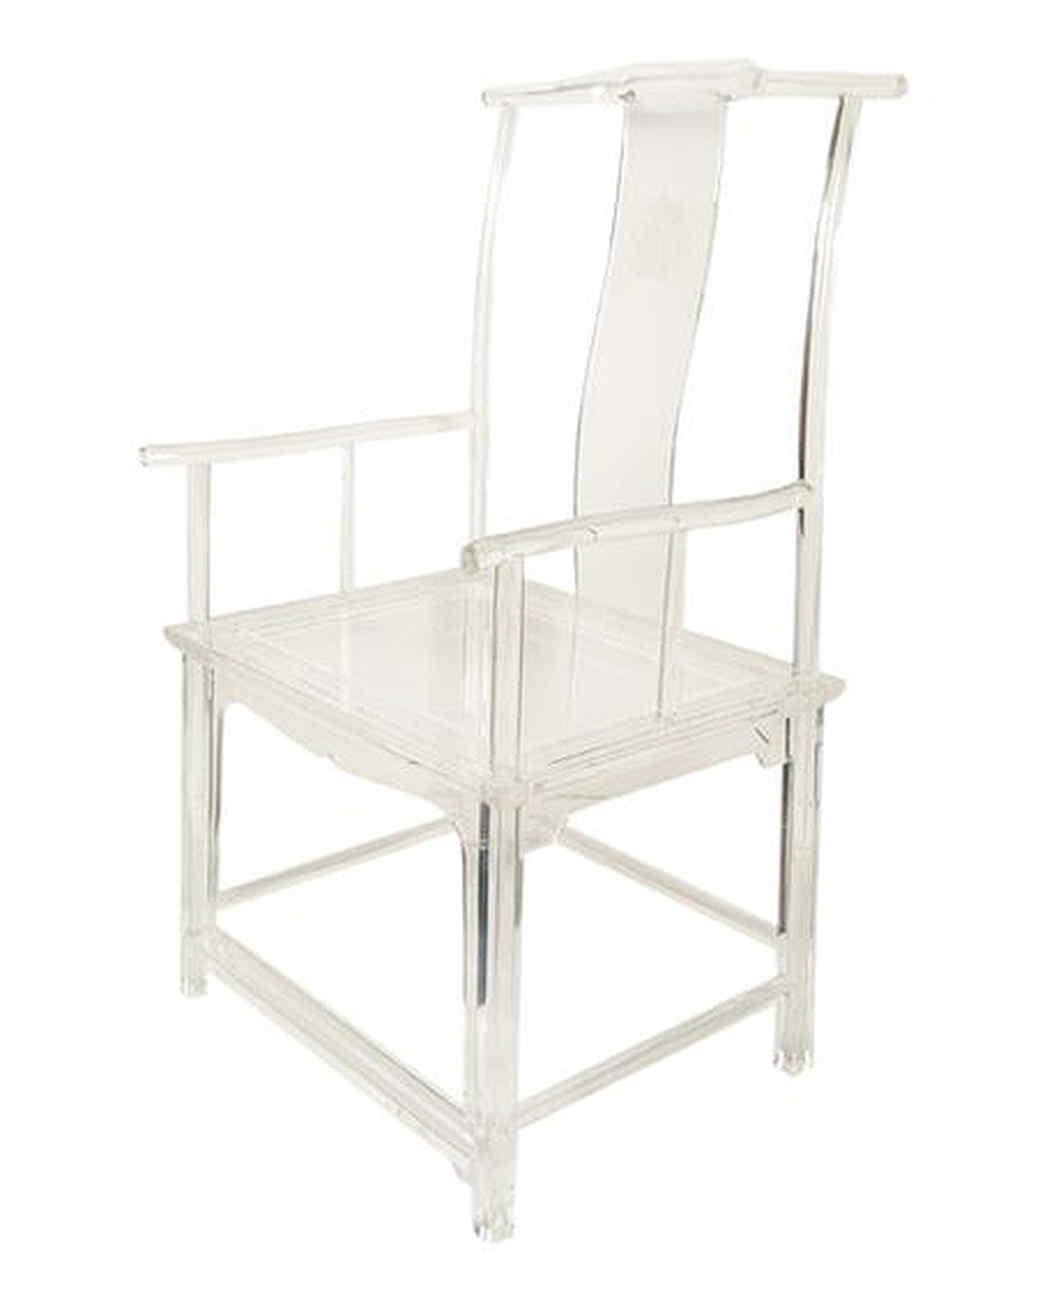 15-lucite-administrators-chair.jpg